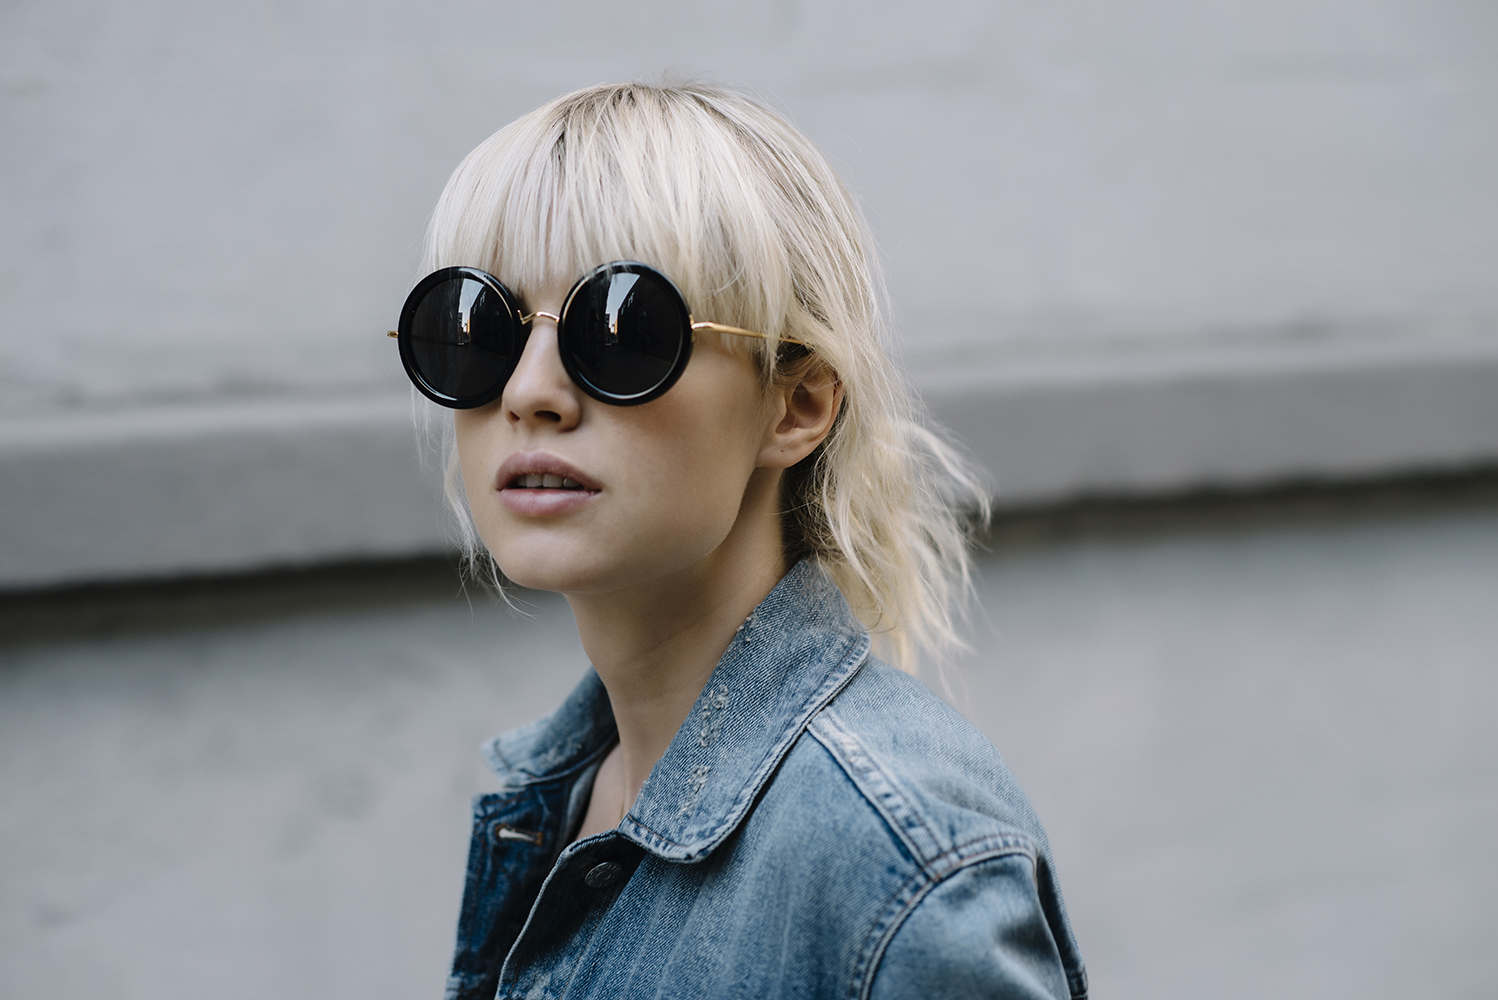 Gilt X The Row Just Another Fashion Blog By Lisa Dengler